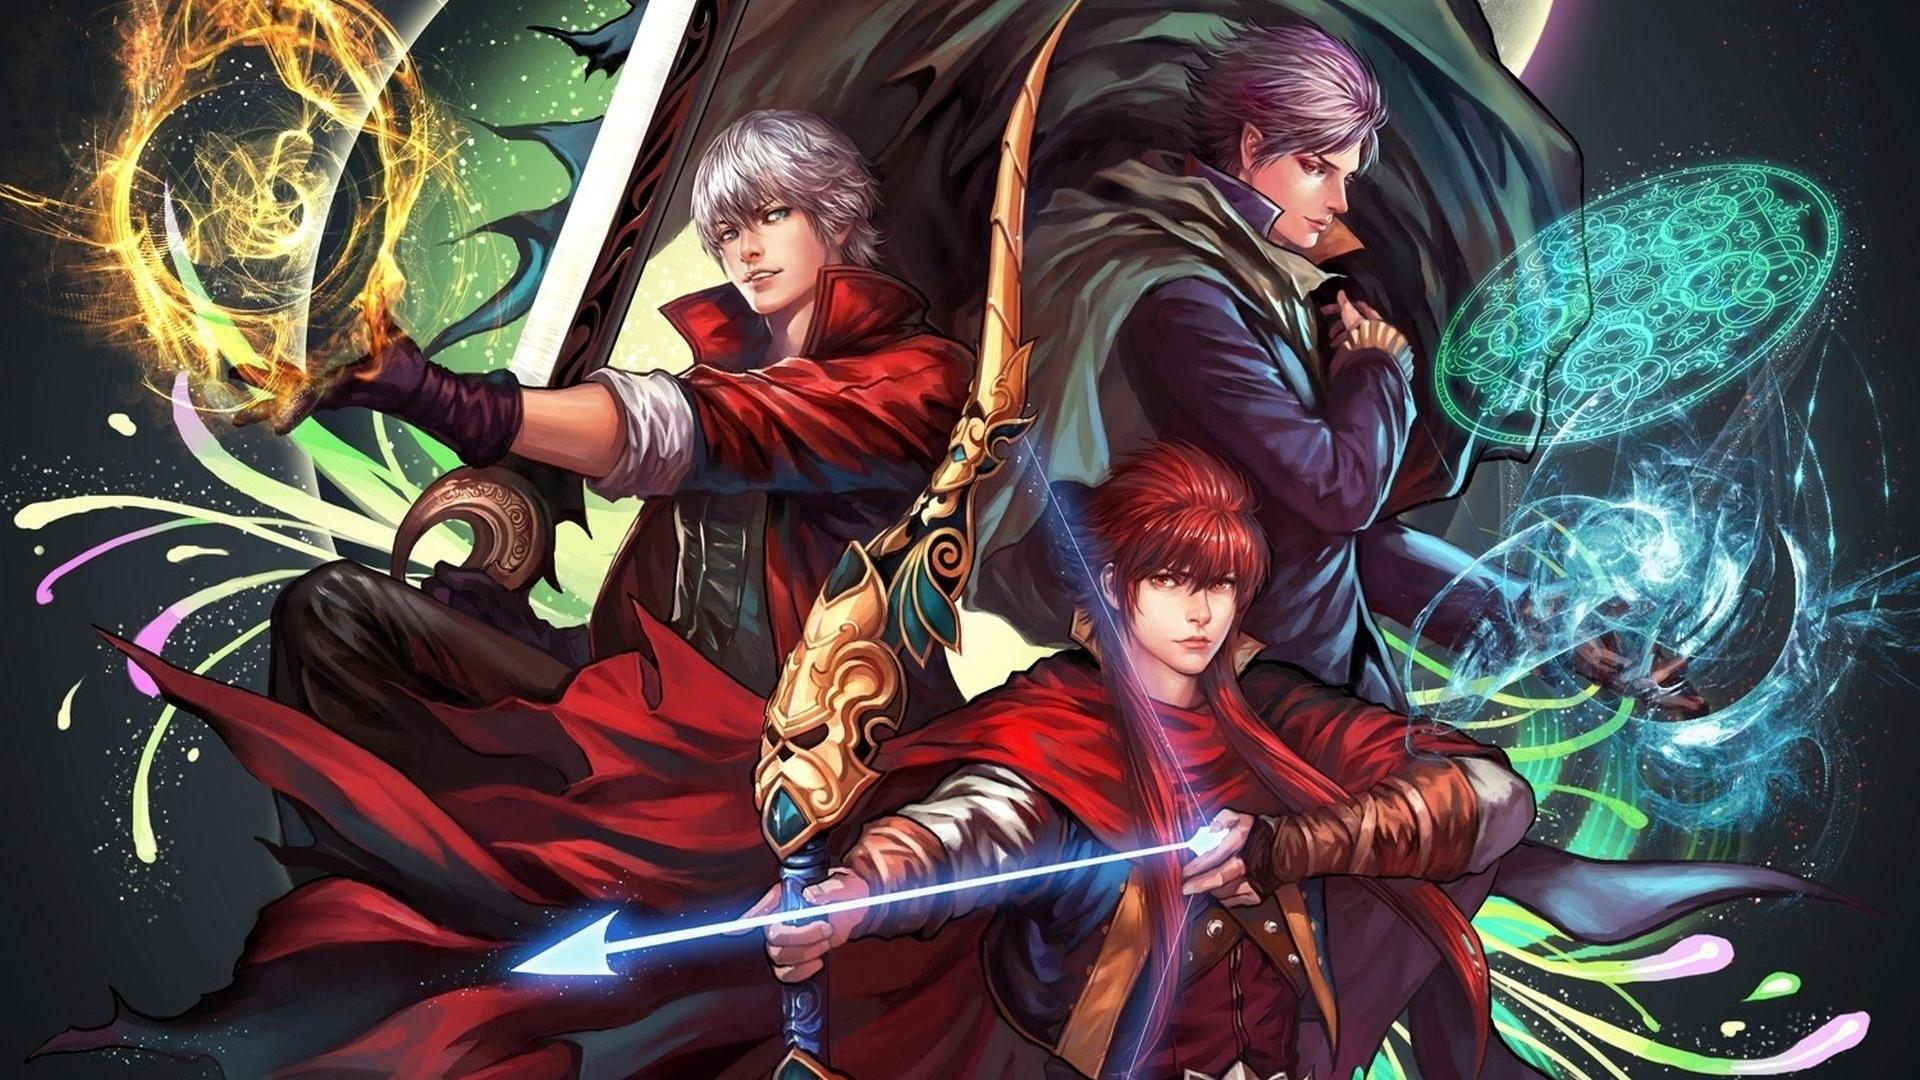 Free Download Cry Devil May Cry Anime May Devil Hd Wallpapers